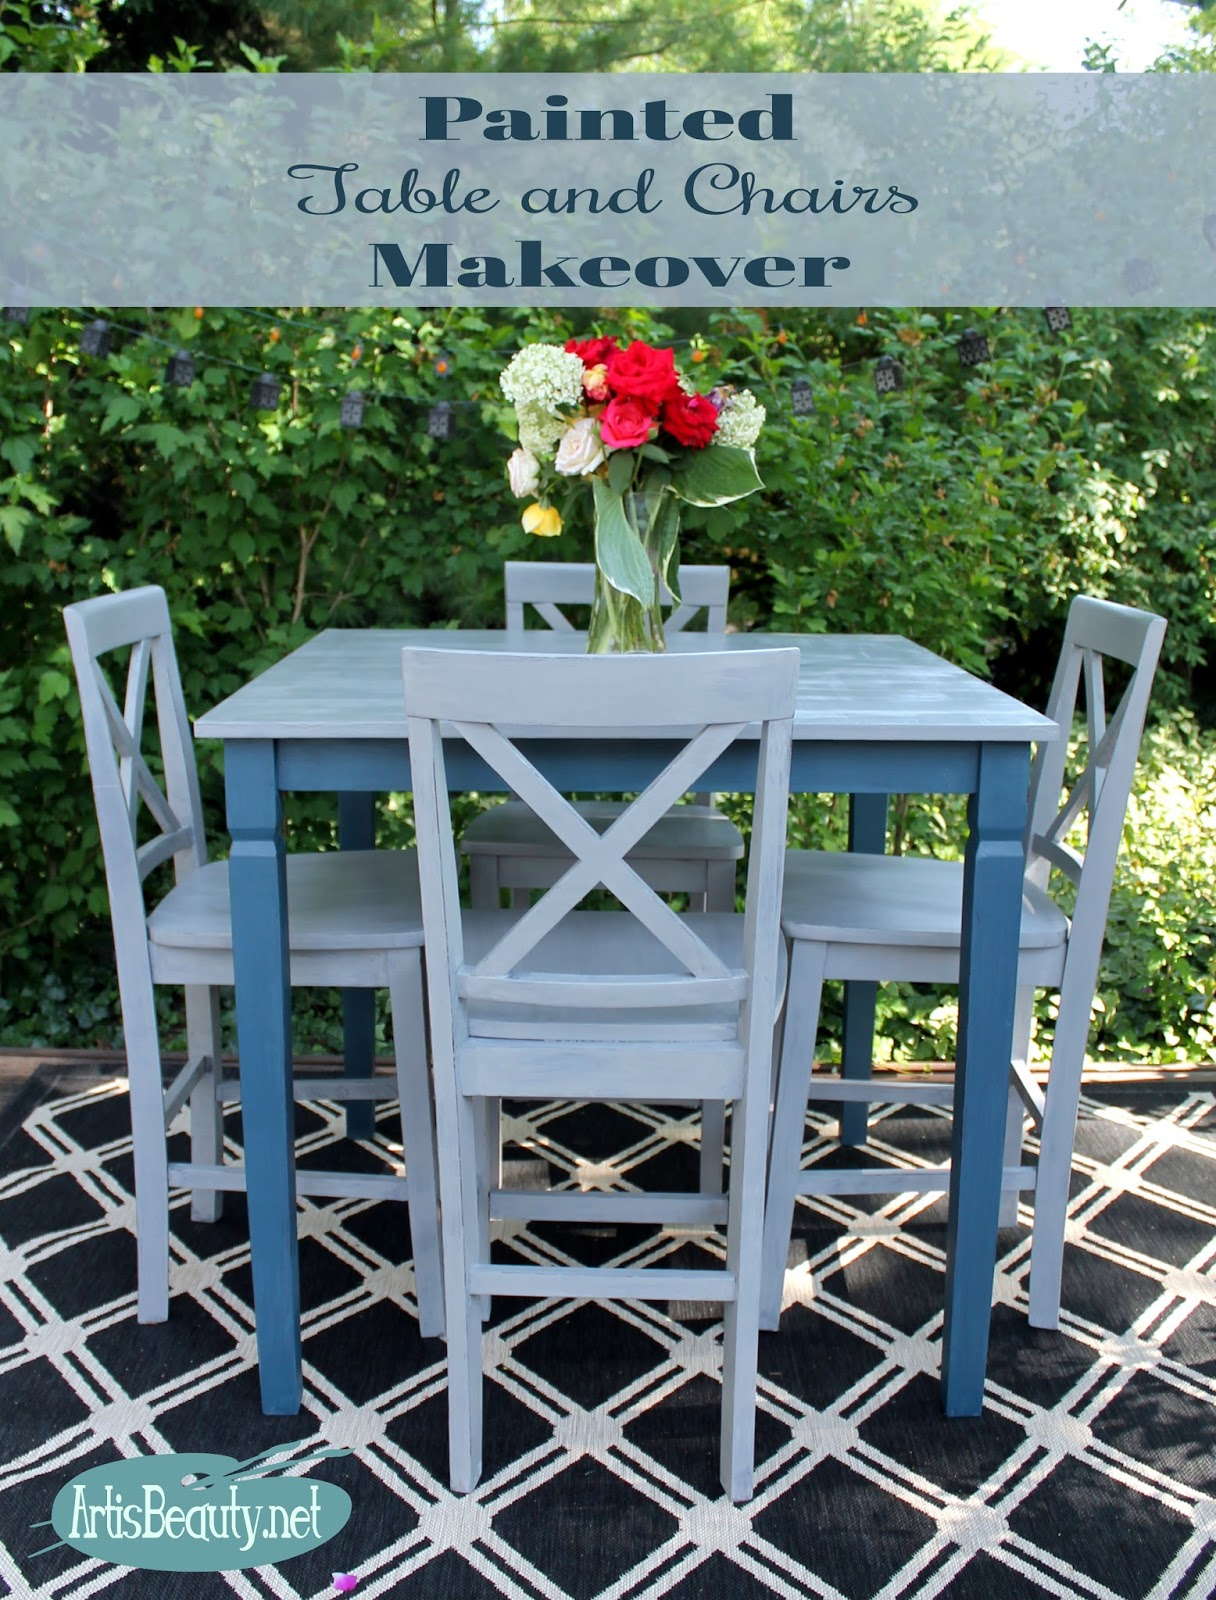 Fresh roadside rescue free table and chairs custom painted makeover fixer upper diy farmhouse style